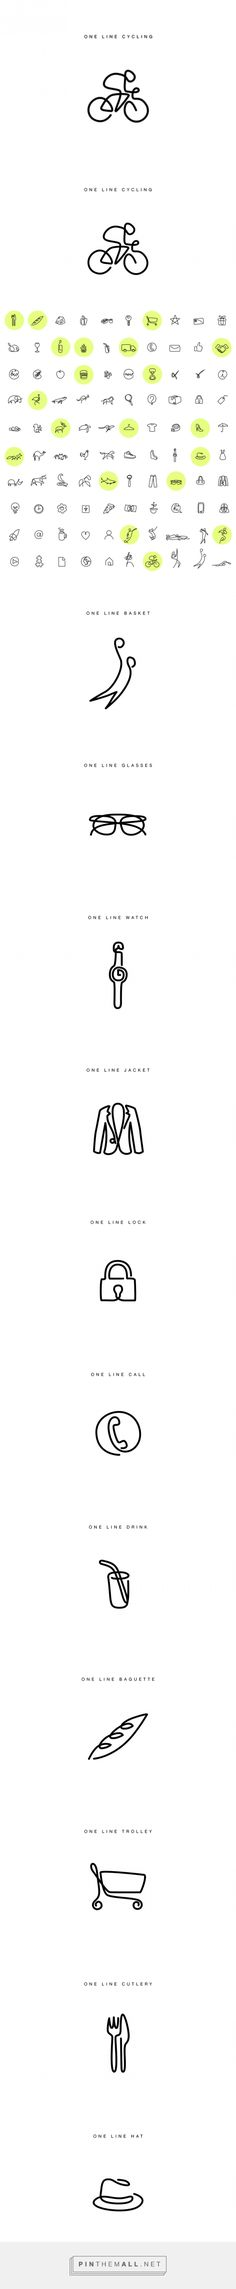 One Line Icons – Fubiz Media - created via http://pinthemall.net